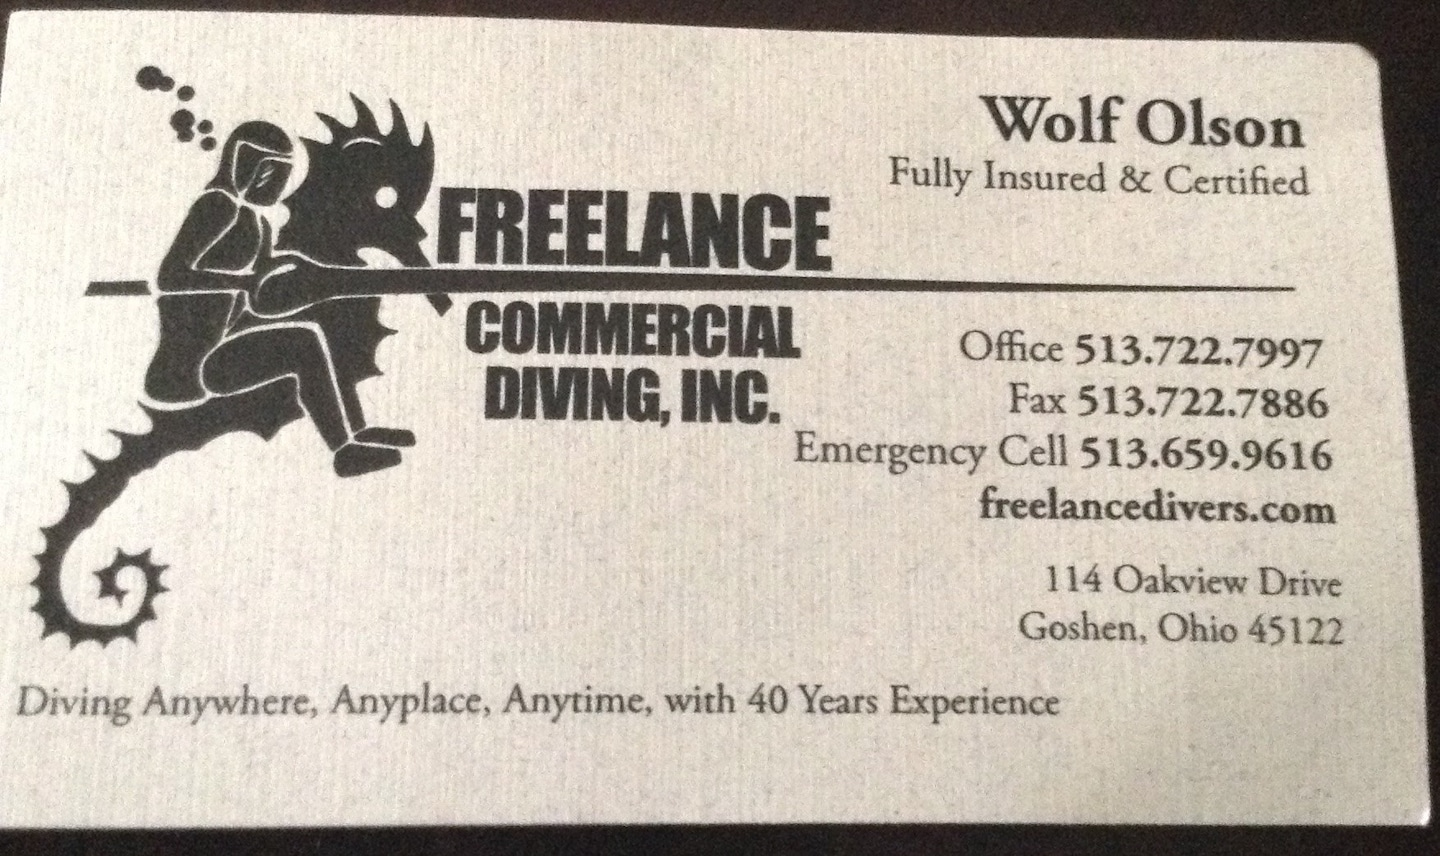 Freelance Commercial Diving Inc